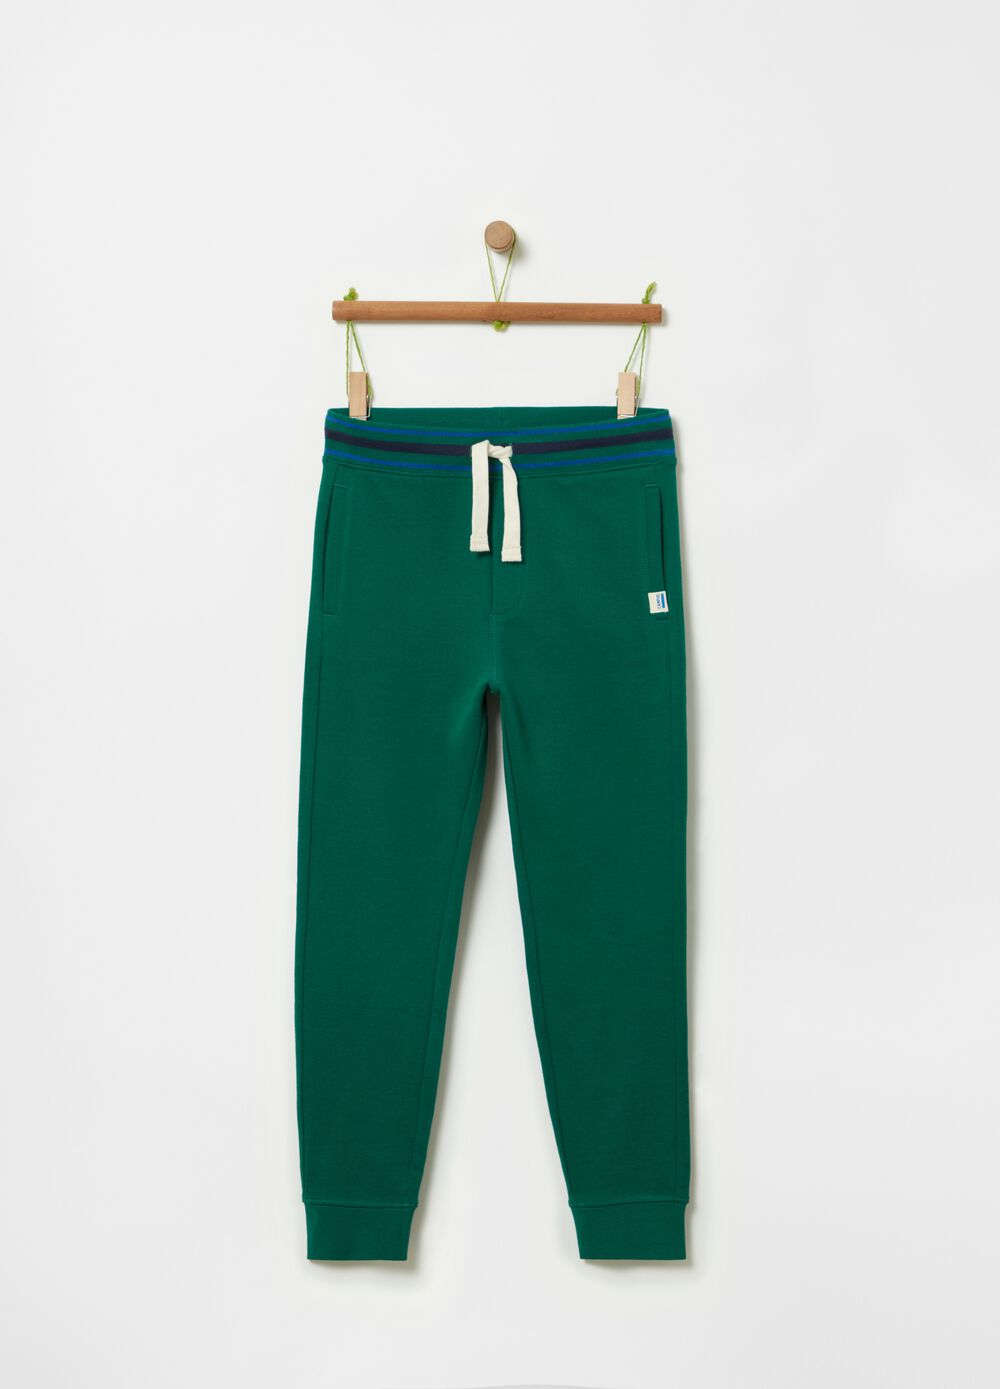 Solid colour 100% organic cotton joggers